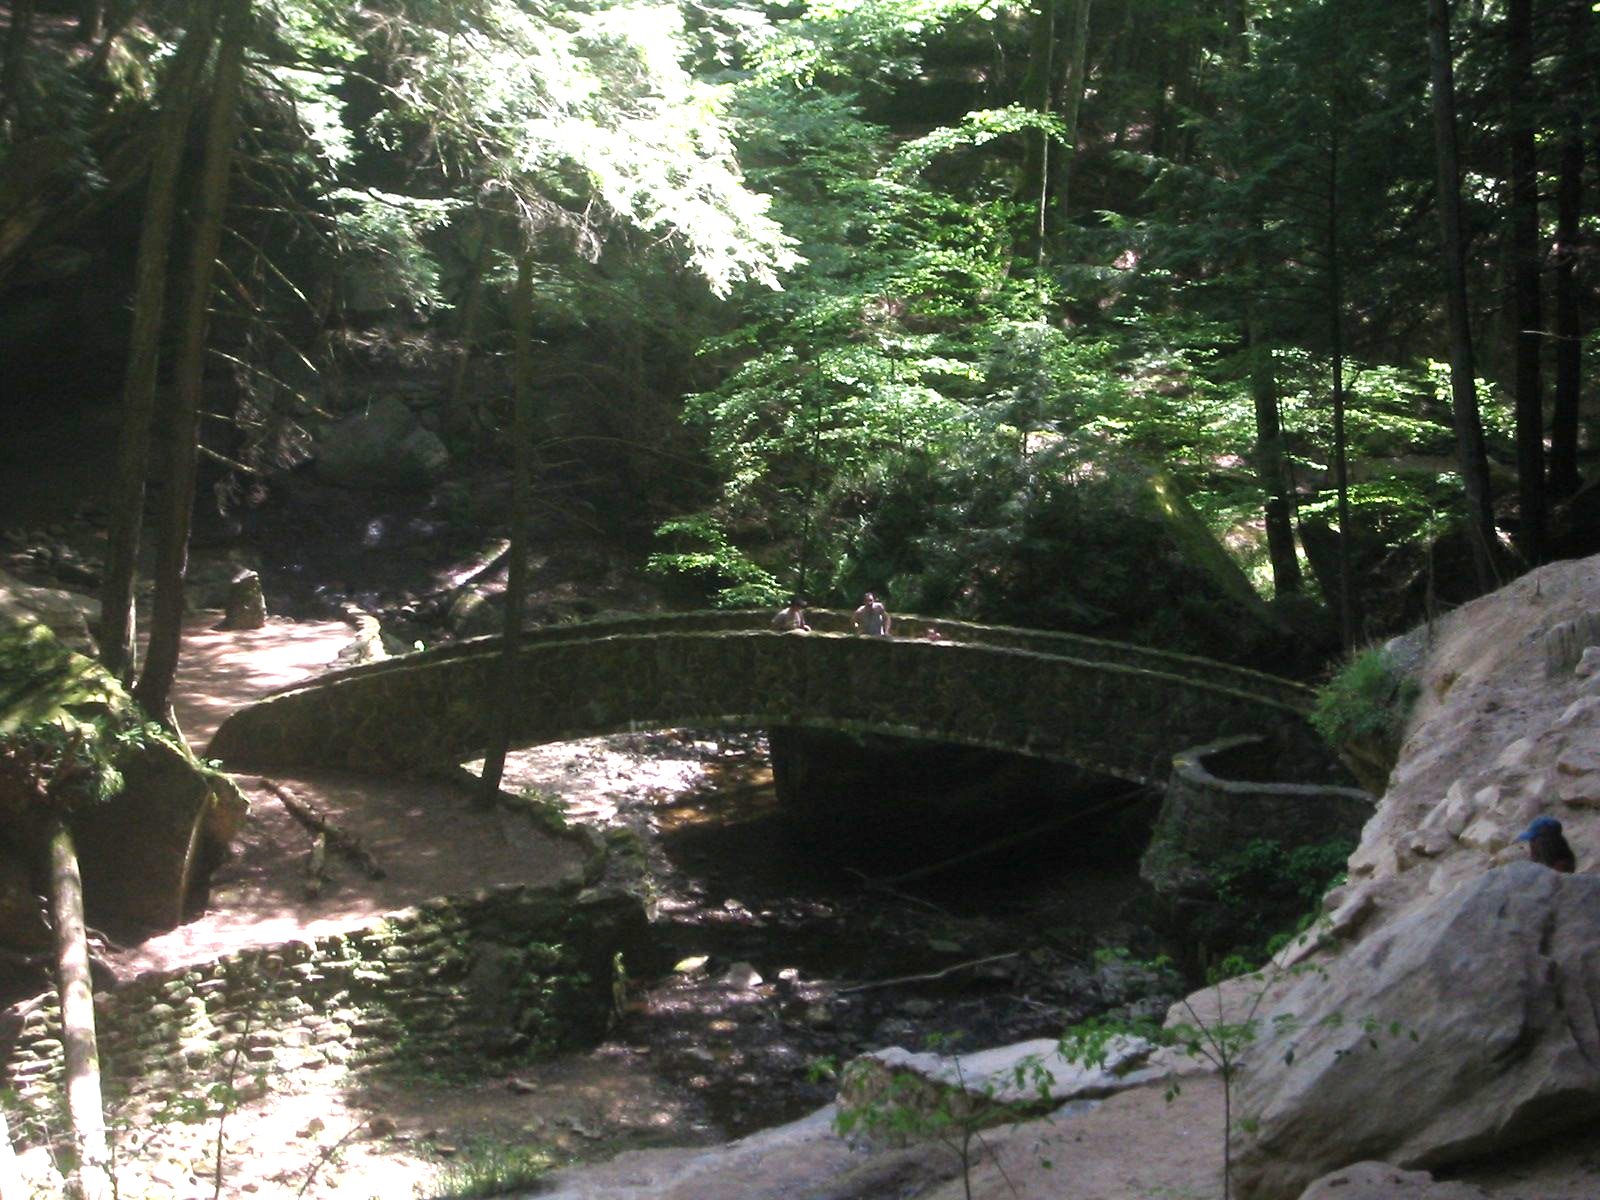 Bridge in Hocking Hills